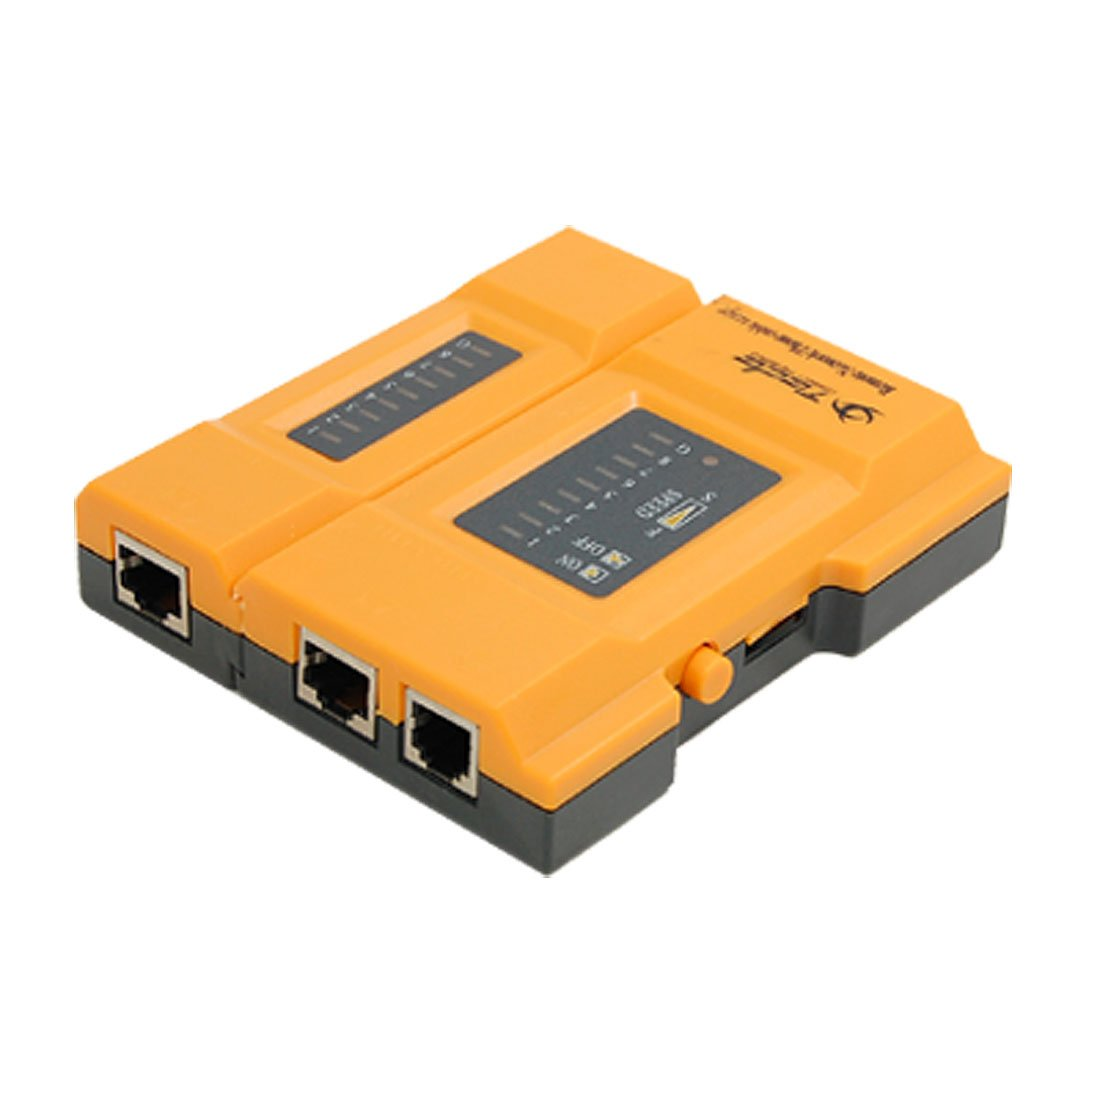 GTFS-Hot Sale Professional RJ11 RJ45 LAN Network Phone Cable Tester